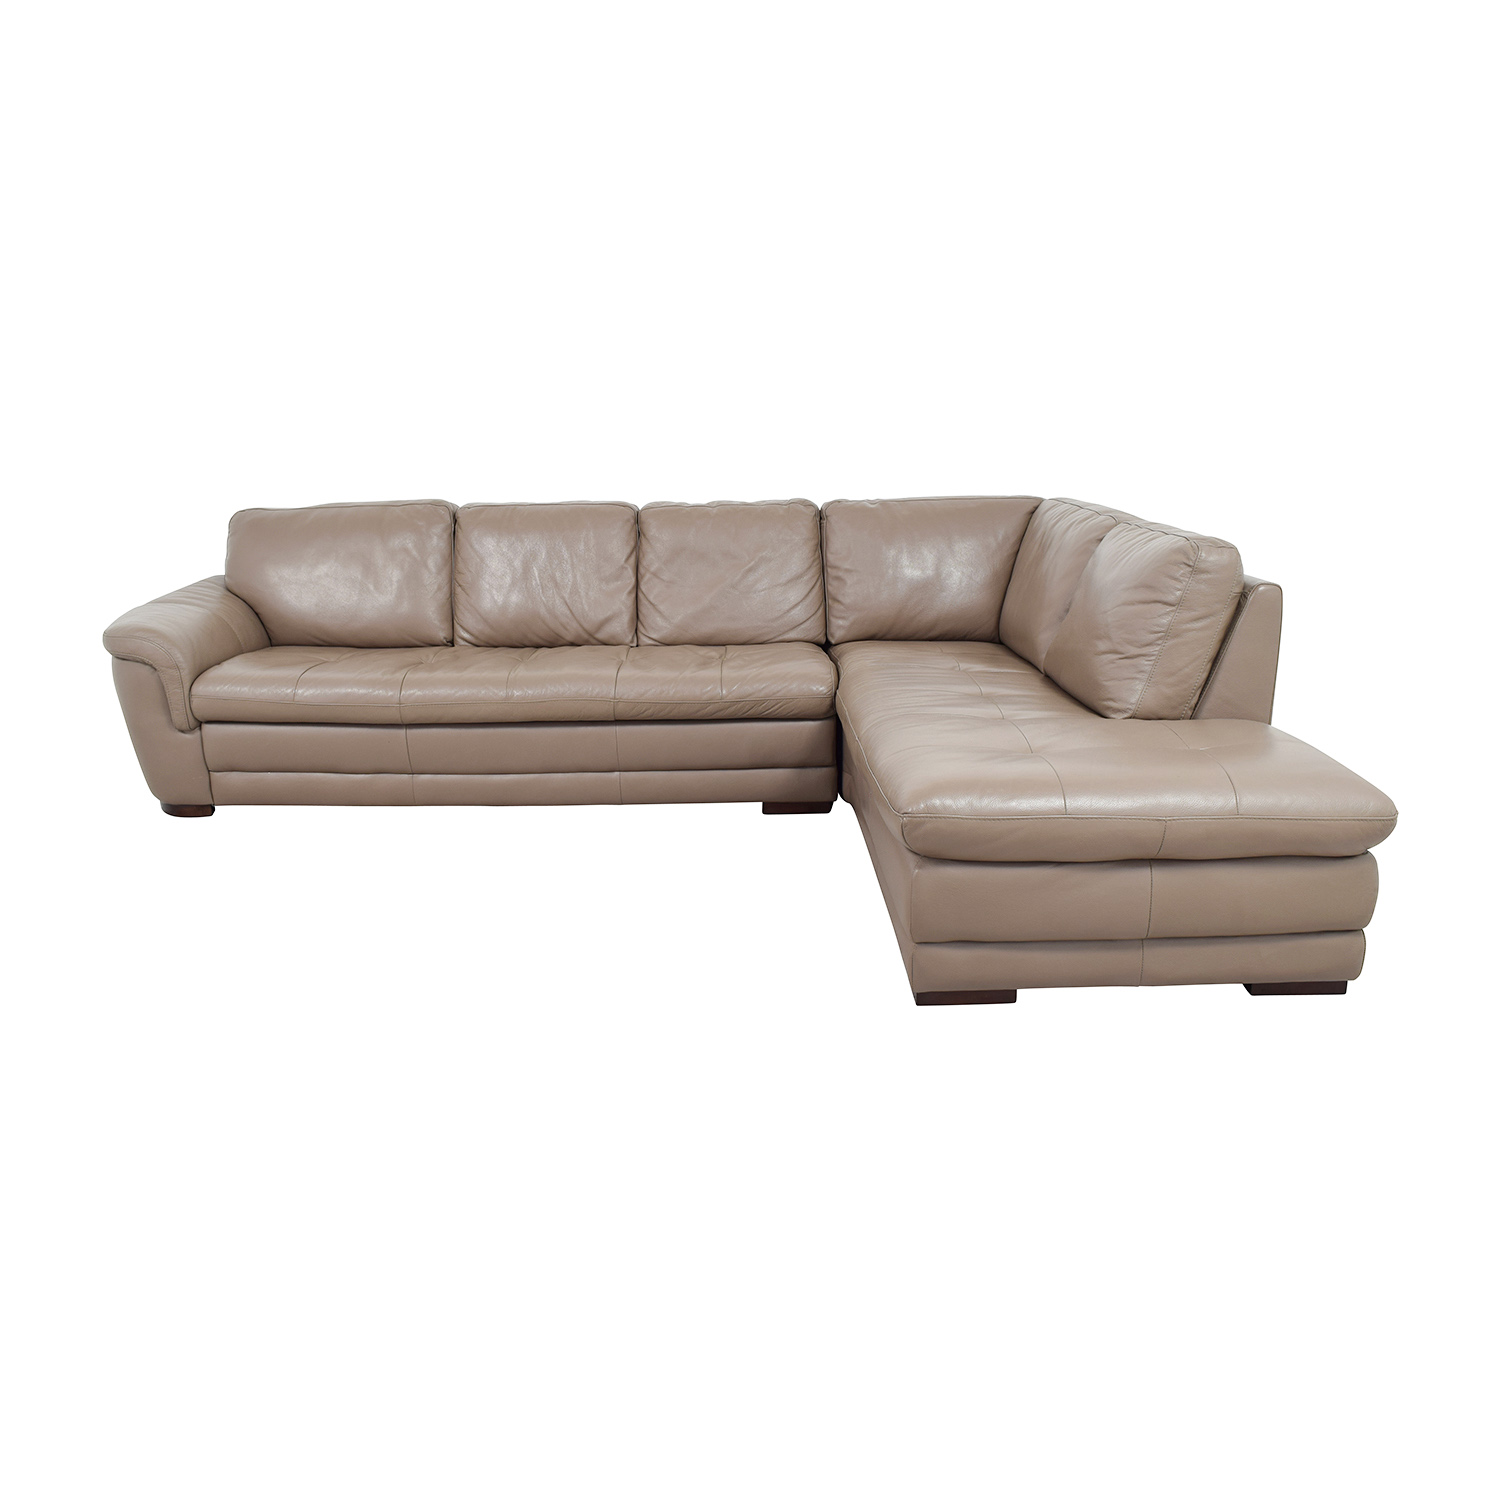 Raymour and Flanigan Raymour u0026 Flanigan Tan Tufted Leather Sectional second ...  sc 1 st  Furnishare : raymour and flanigan sectionals - Sectionals, Sofas & Couches